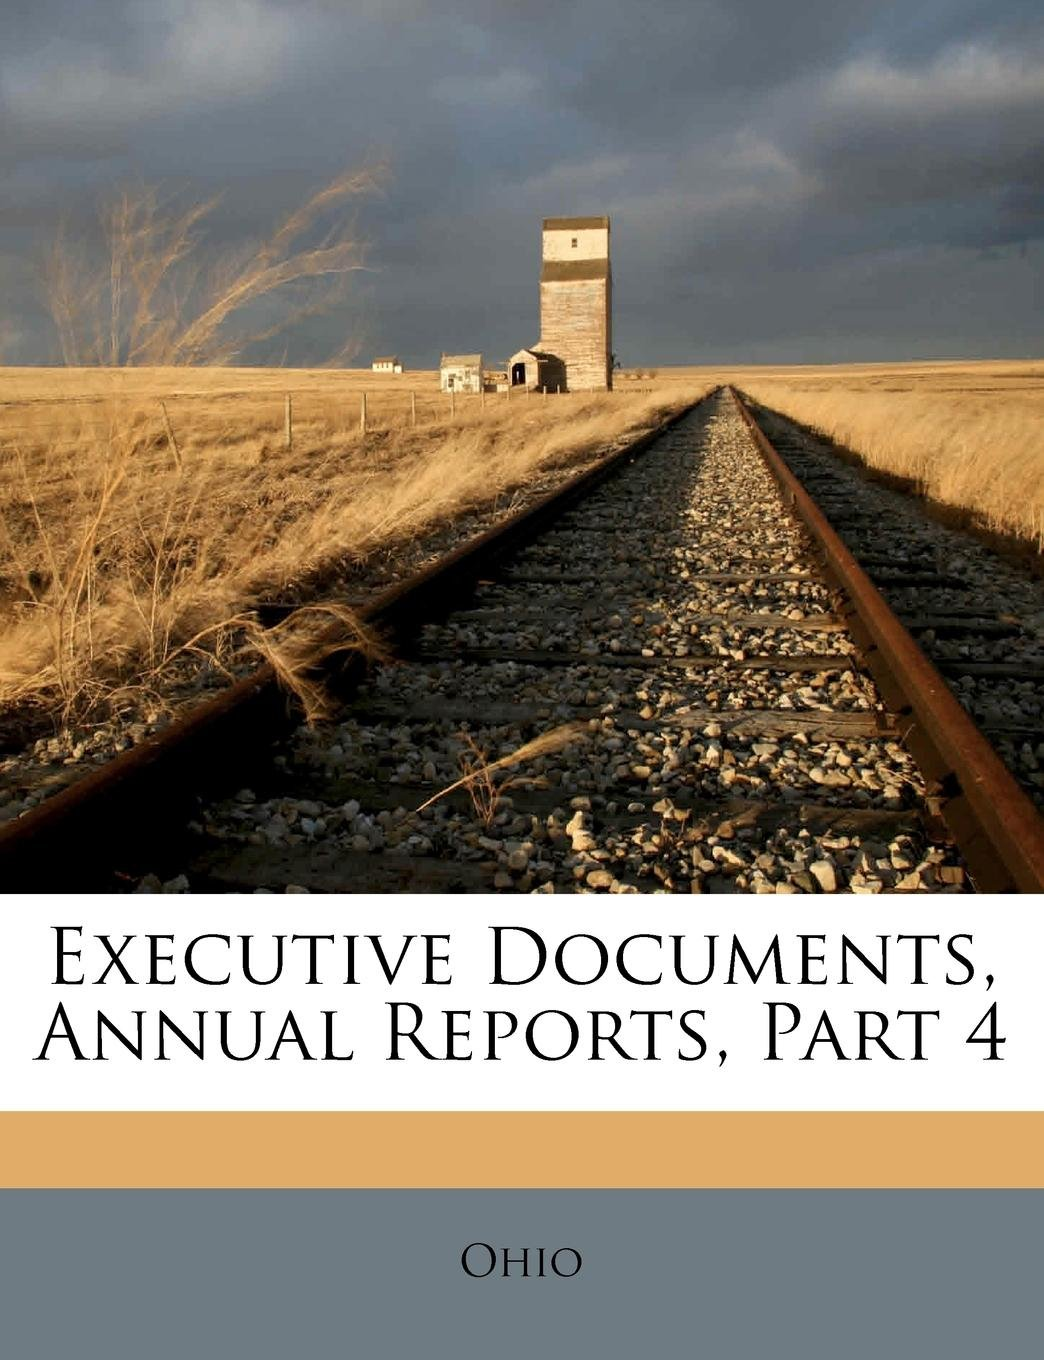 Download Executive Documents, Annual Reports, Part 4 ebook